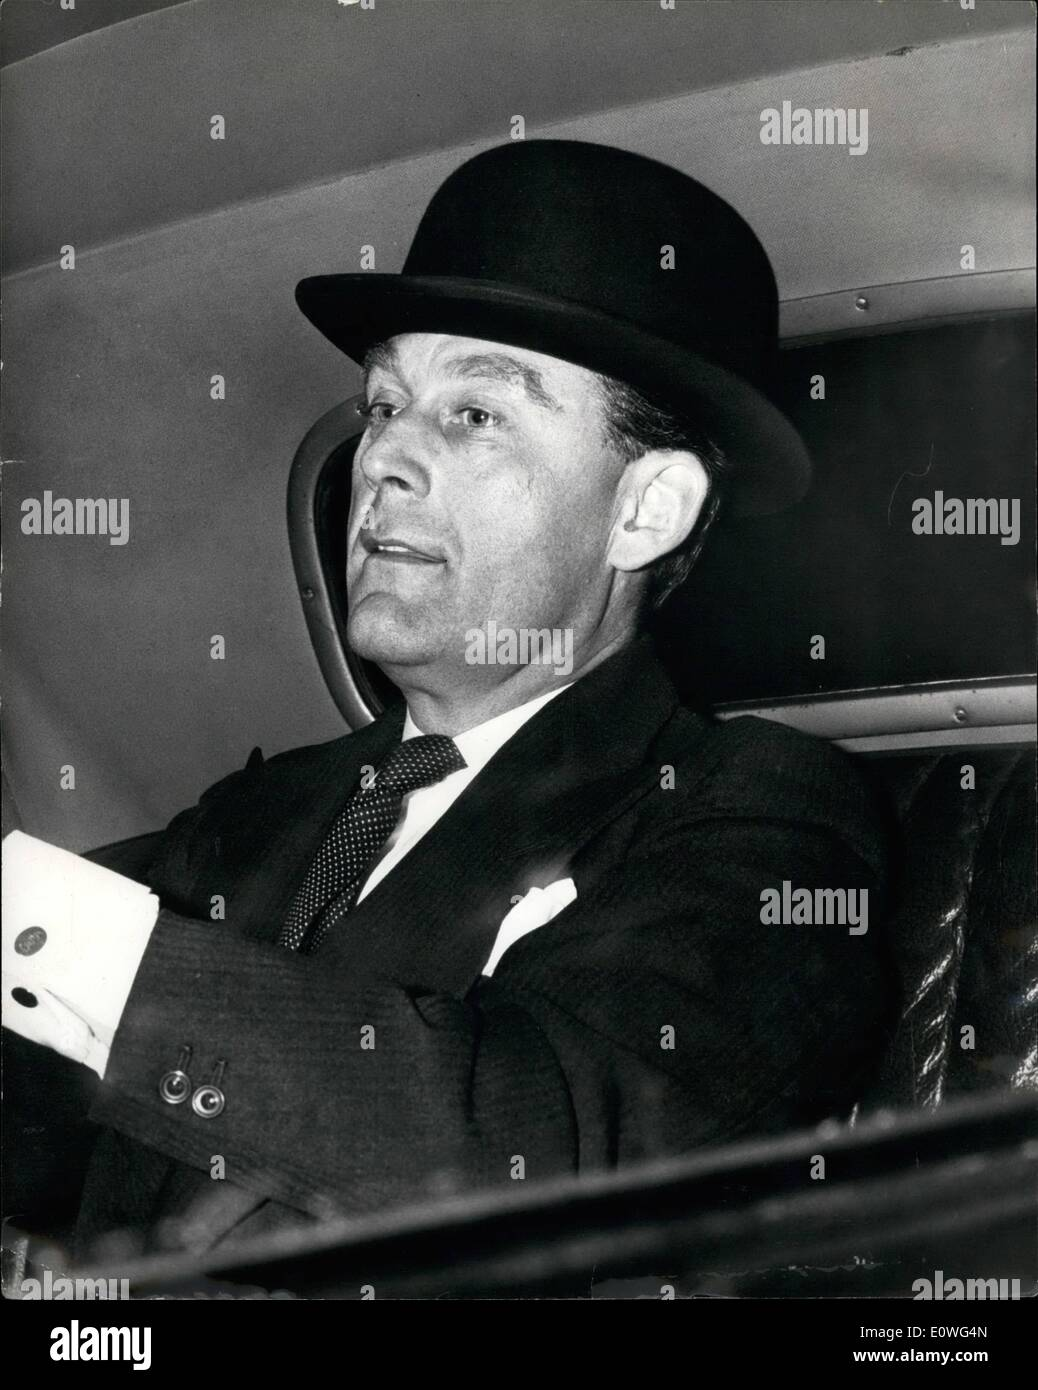 Nov. 11, 1962 - Mr. Galbraith Leaves Westminster Home: Mr. Thomas Galbraith, Under-Secretary of State for Scotland, Stock Photo